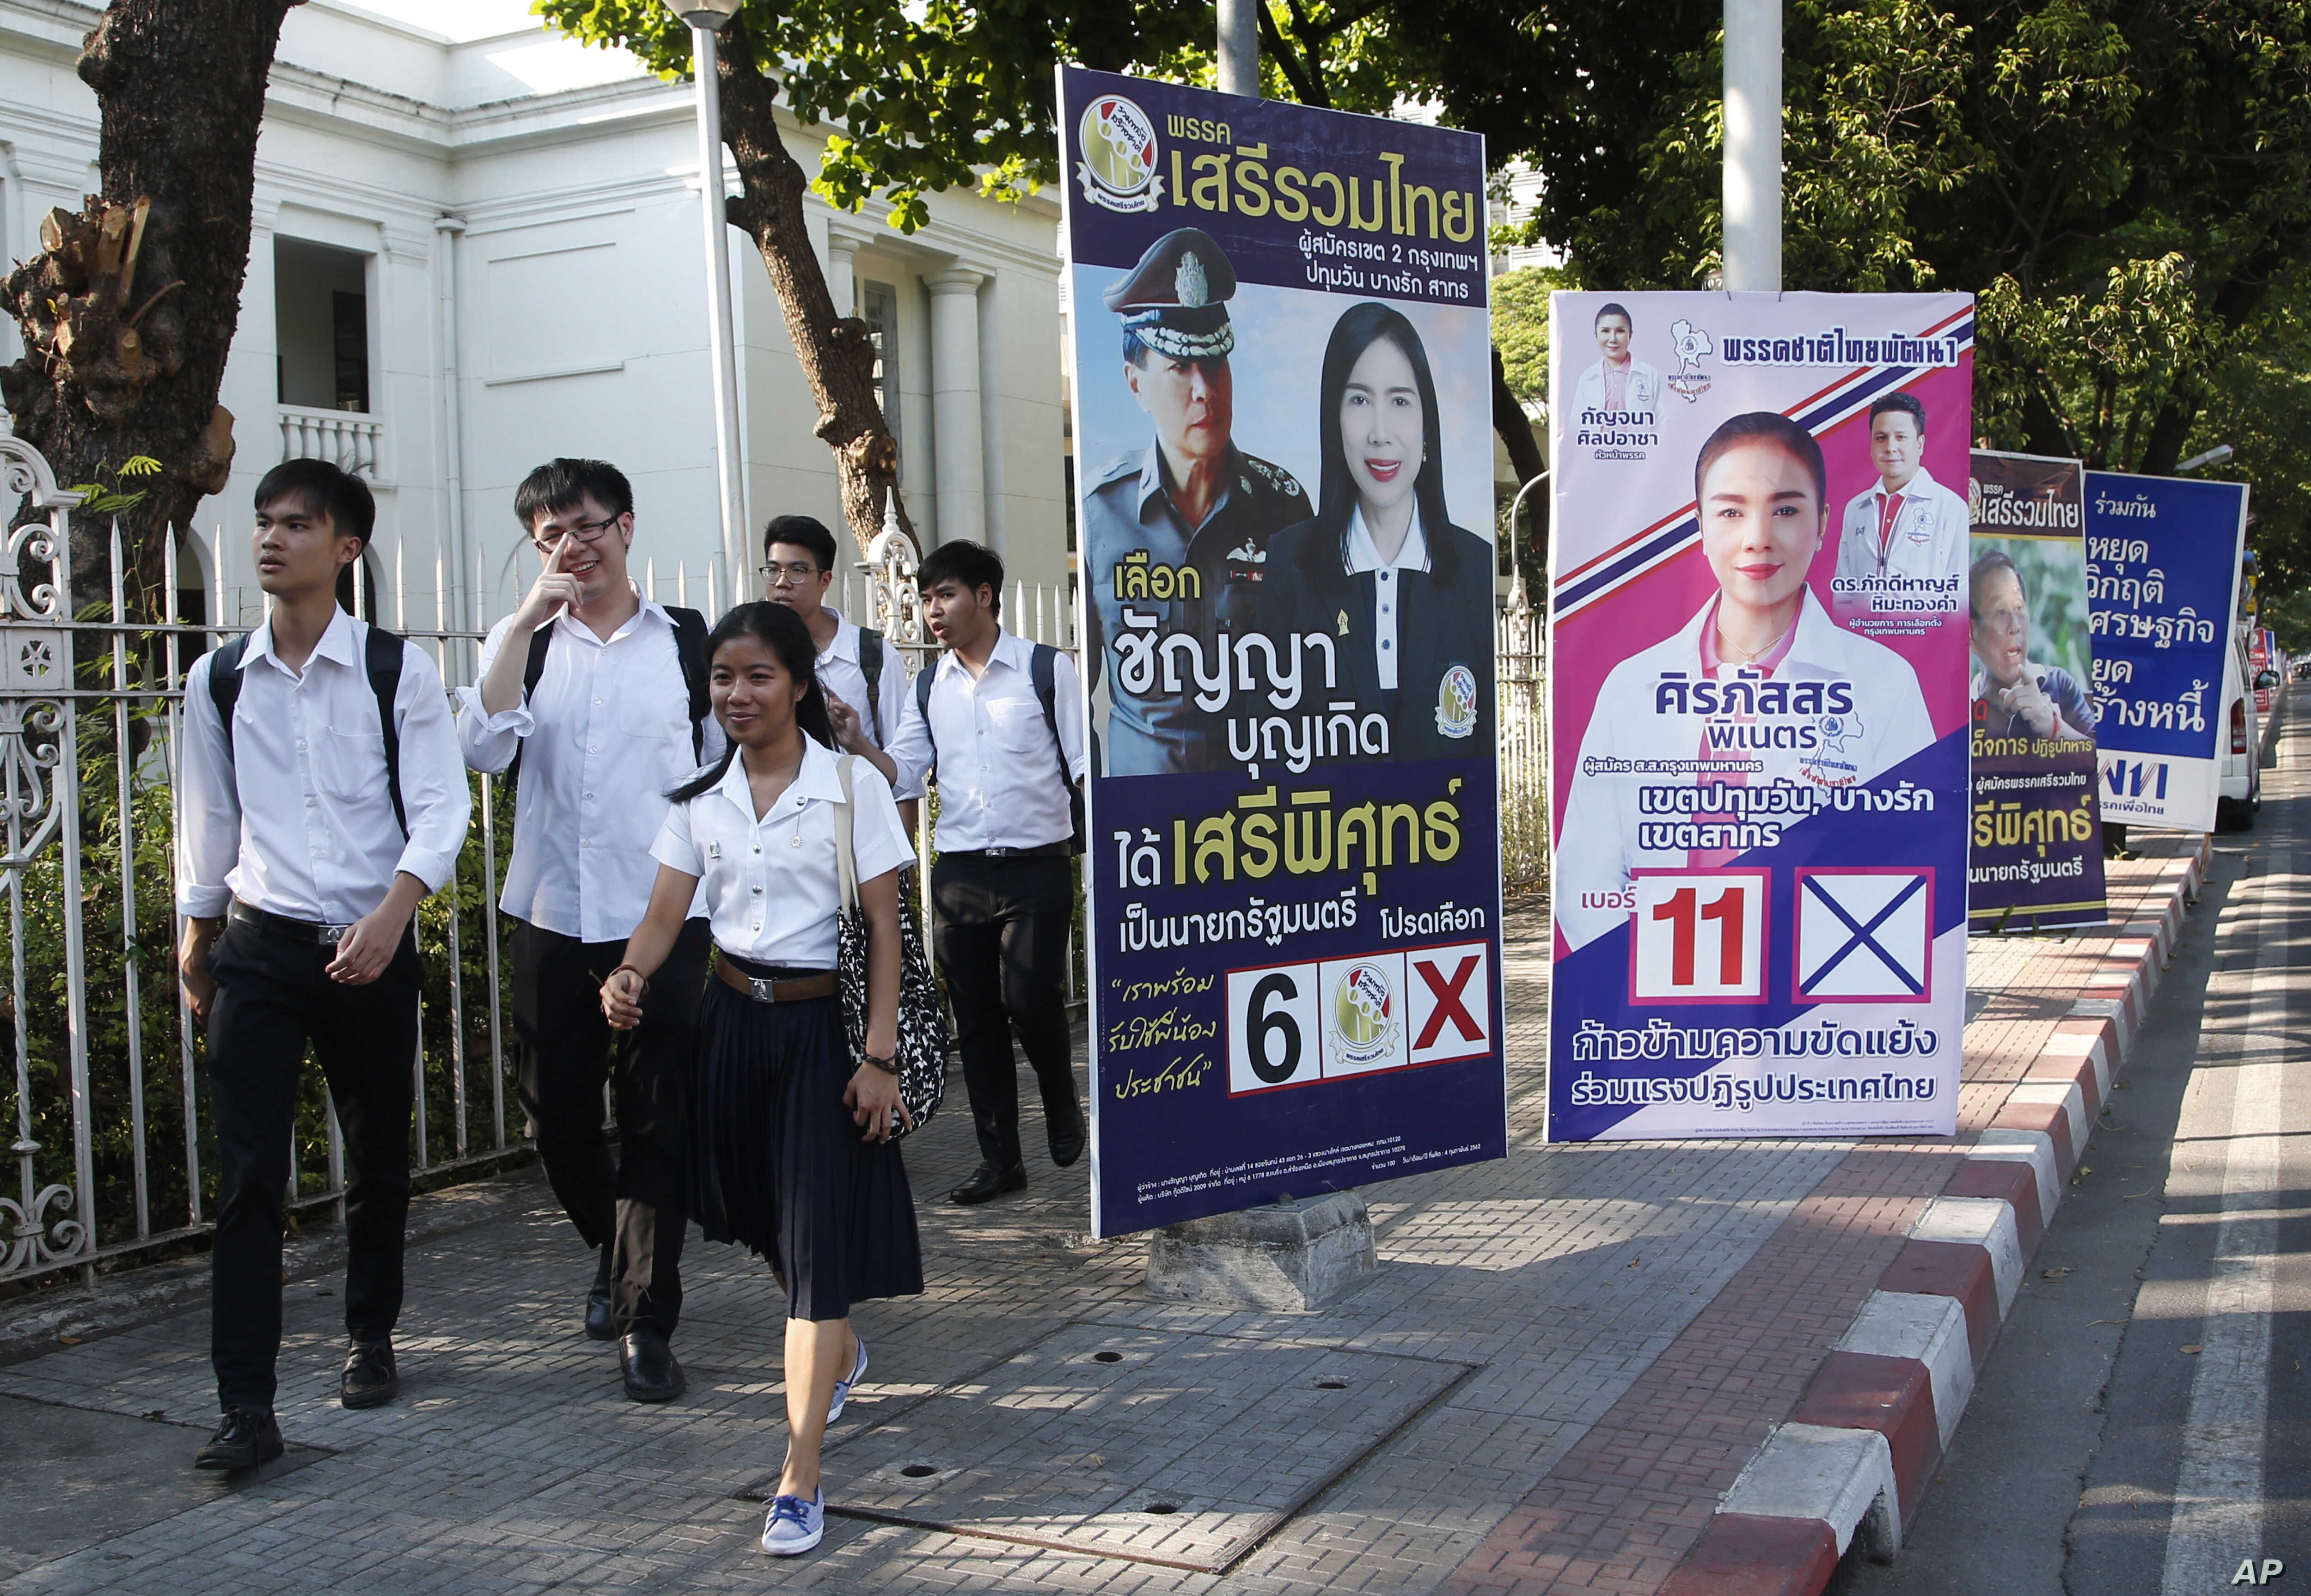 Students of Chulalongkorn University walks past election campaign posters in Bangkok, Thailand, March 12, 201.